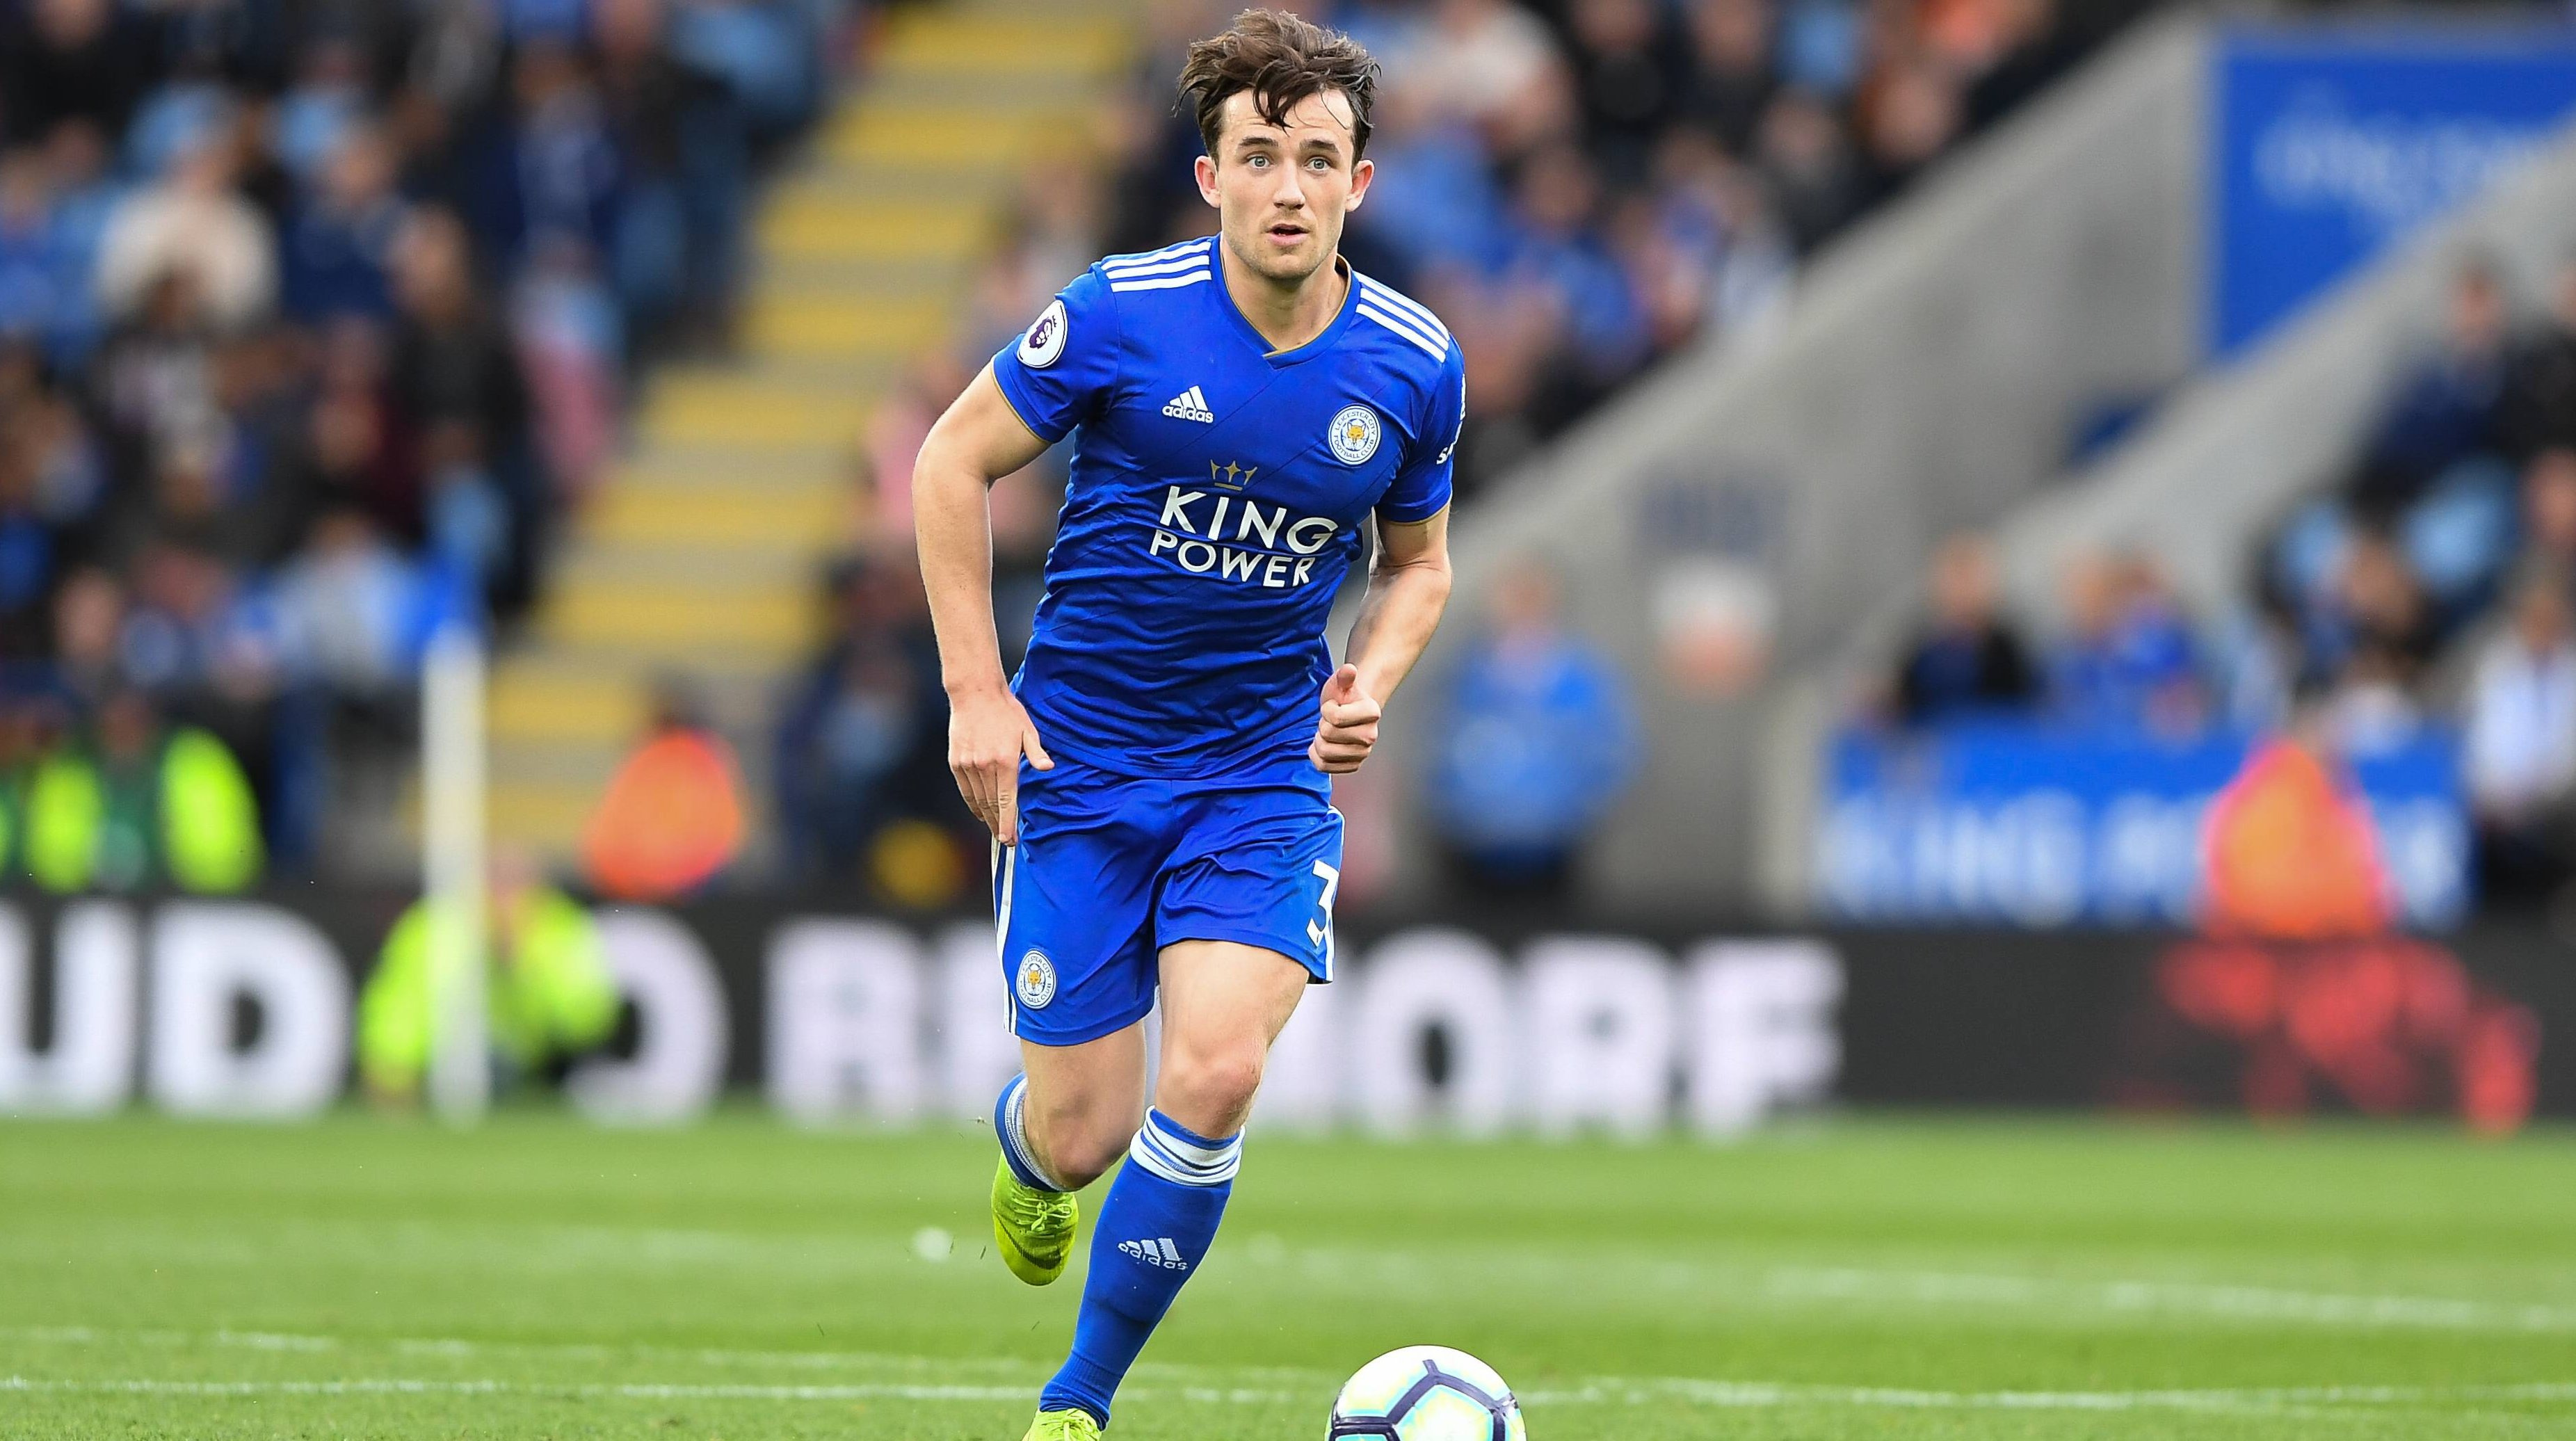 Ben Chilwell to join Chelsea - Medical already completed? | Transfermarkt